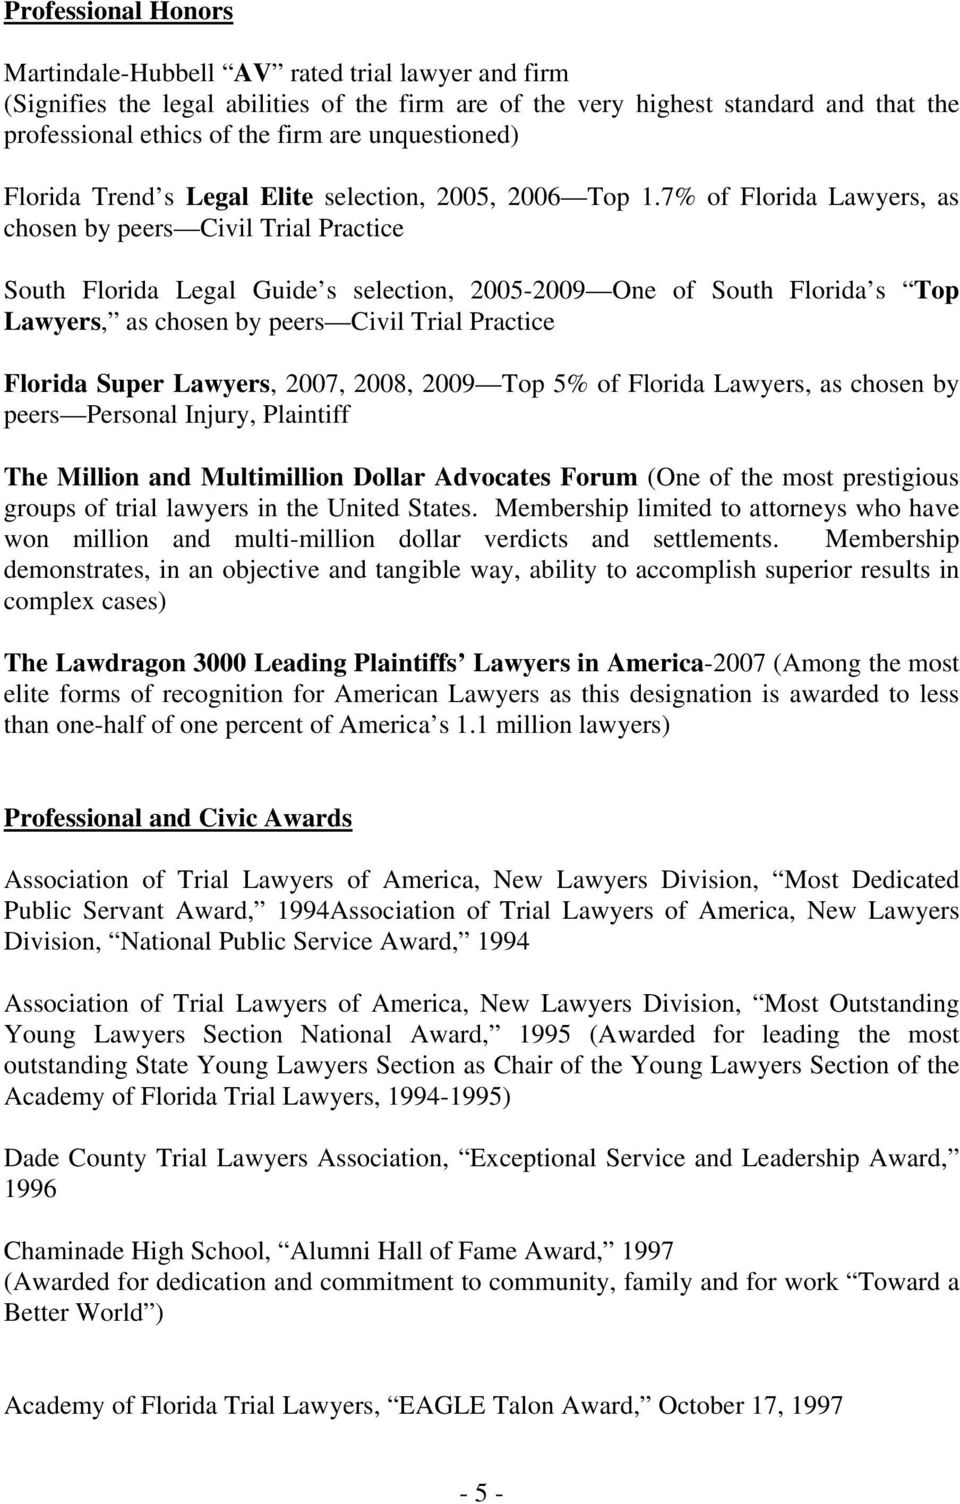 7% of Florida Lawyers, as chosen by peers Civil Trial Practice South Florida Legal Guide s selection, 2005-2009 One of South Florida s Top Lawyers, as chosen by peers Civil Trial Practice Florida